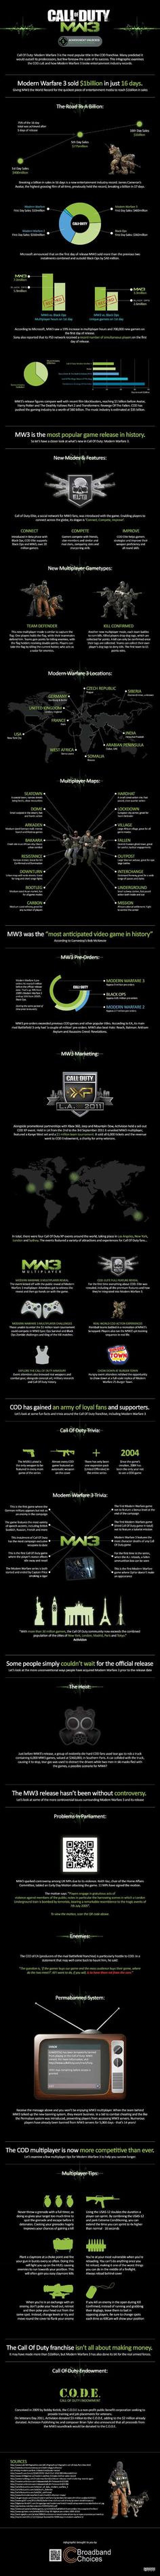 Call of Duty Modern Warfare 2 - Poster Ghost - PC Gamers Unite ...